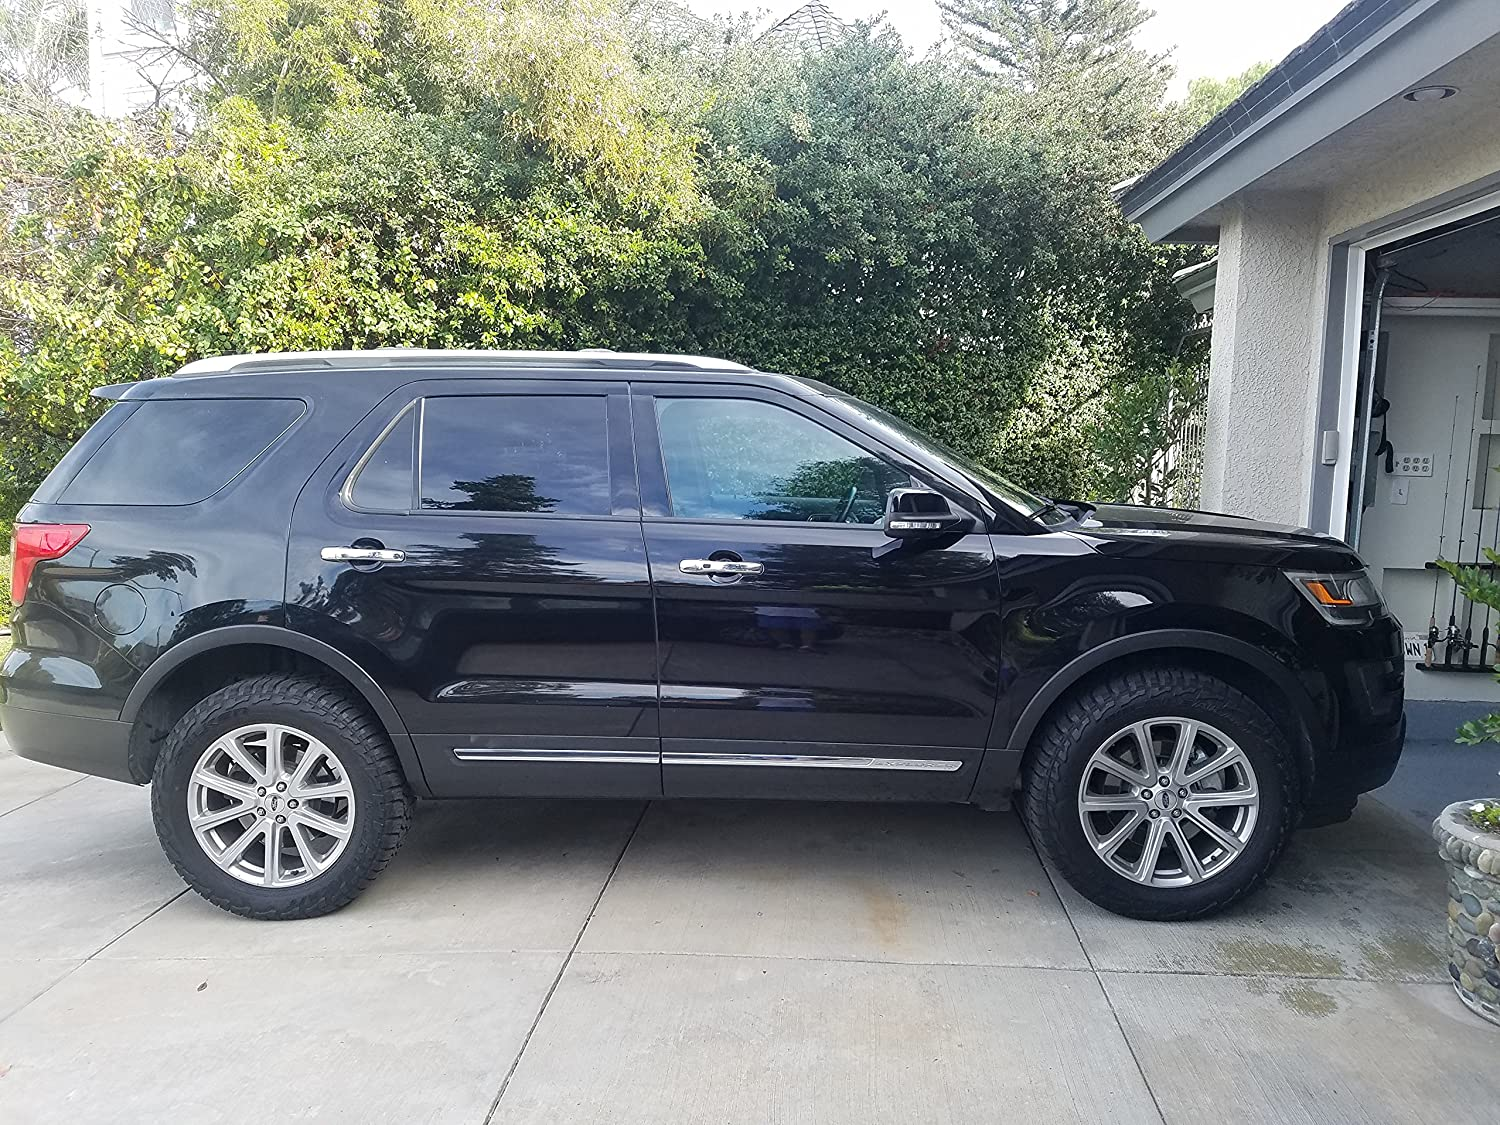 Lifted Ford Explorer >> Truxxx 102015 2 5 Lift Kit Compatible With 2011 2019 Ford Explorer All Trim Models Including Police Interceptor 2wd 4wd All Engines